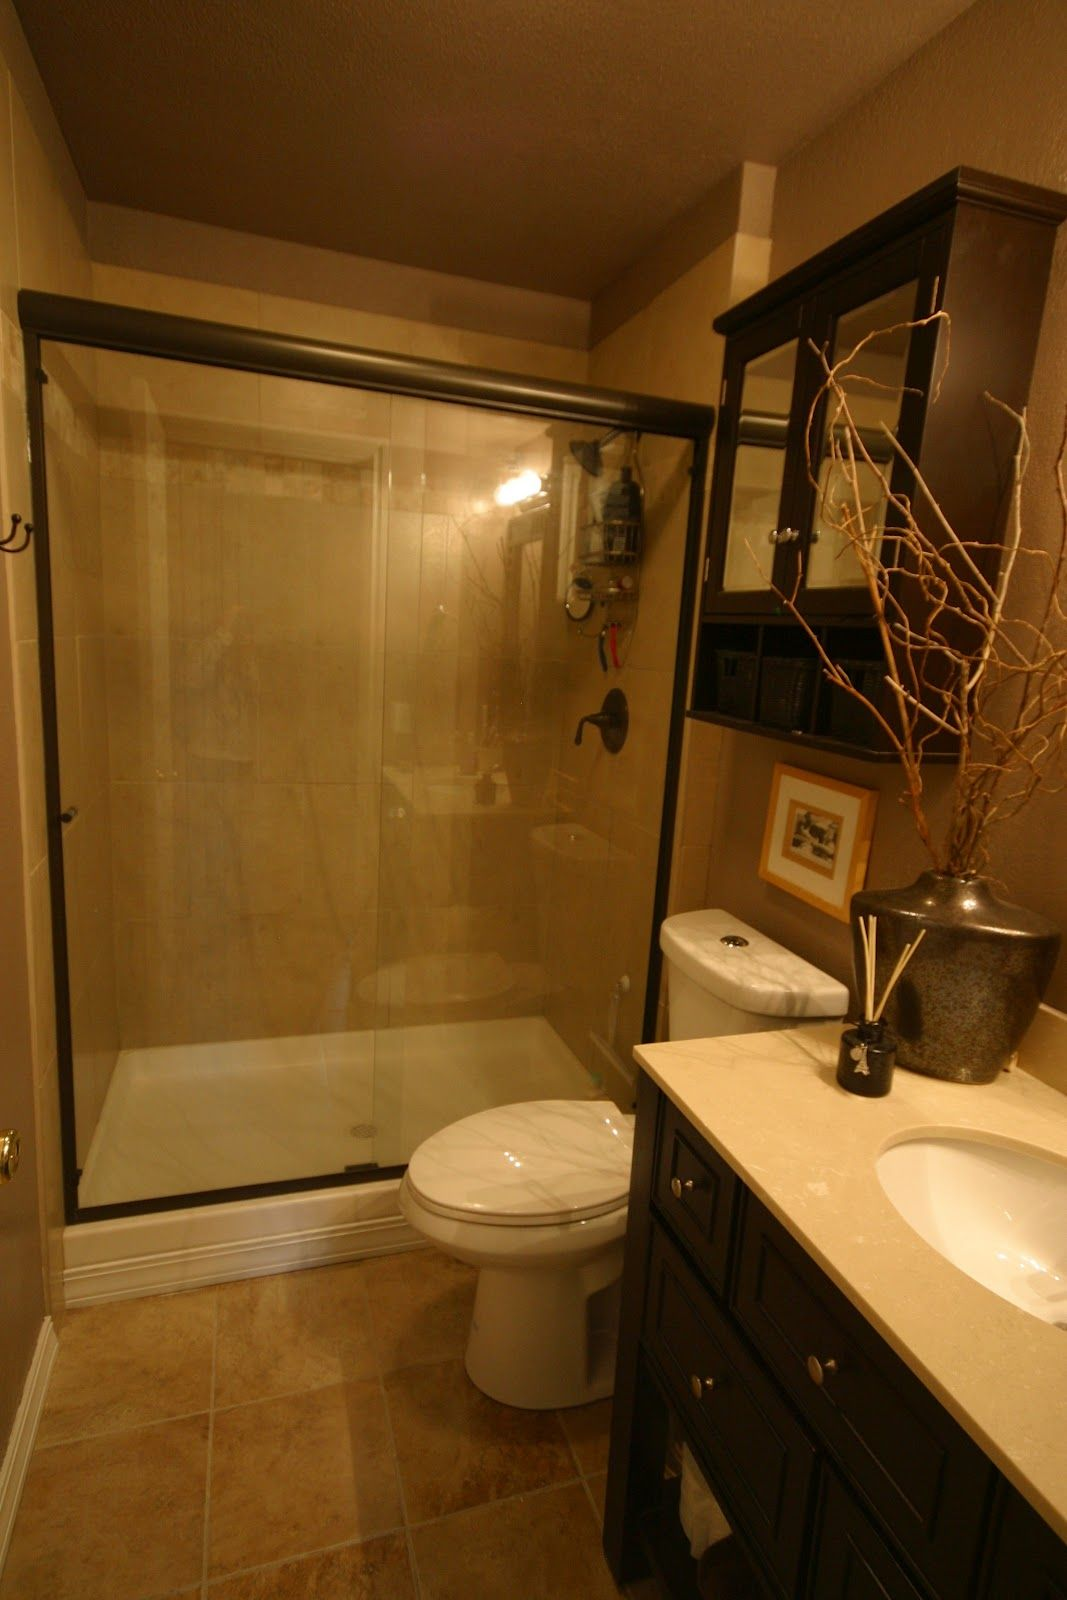 1000 images about bathroom remodel ideas on pinterest small bathrooms showers and bathroom